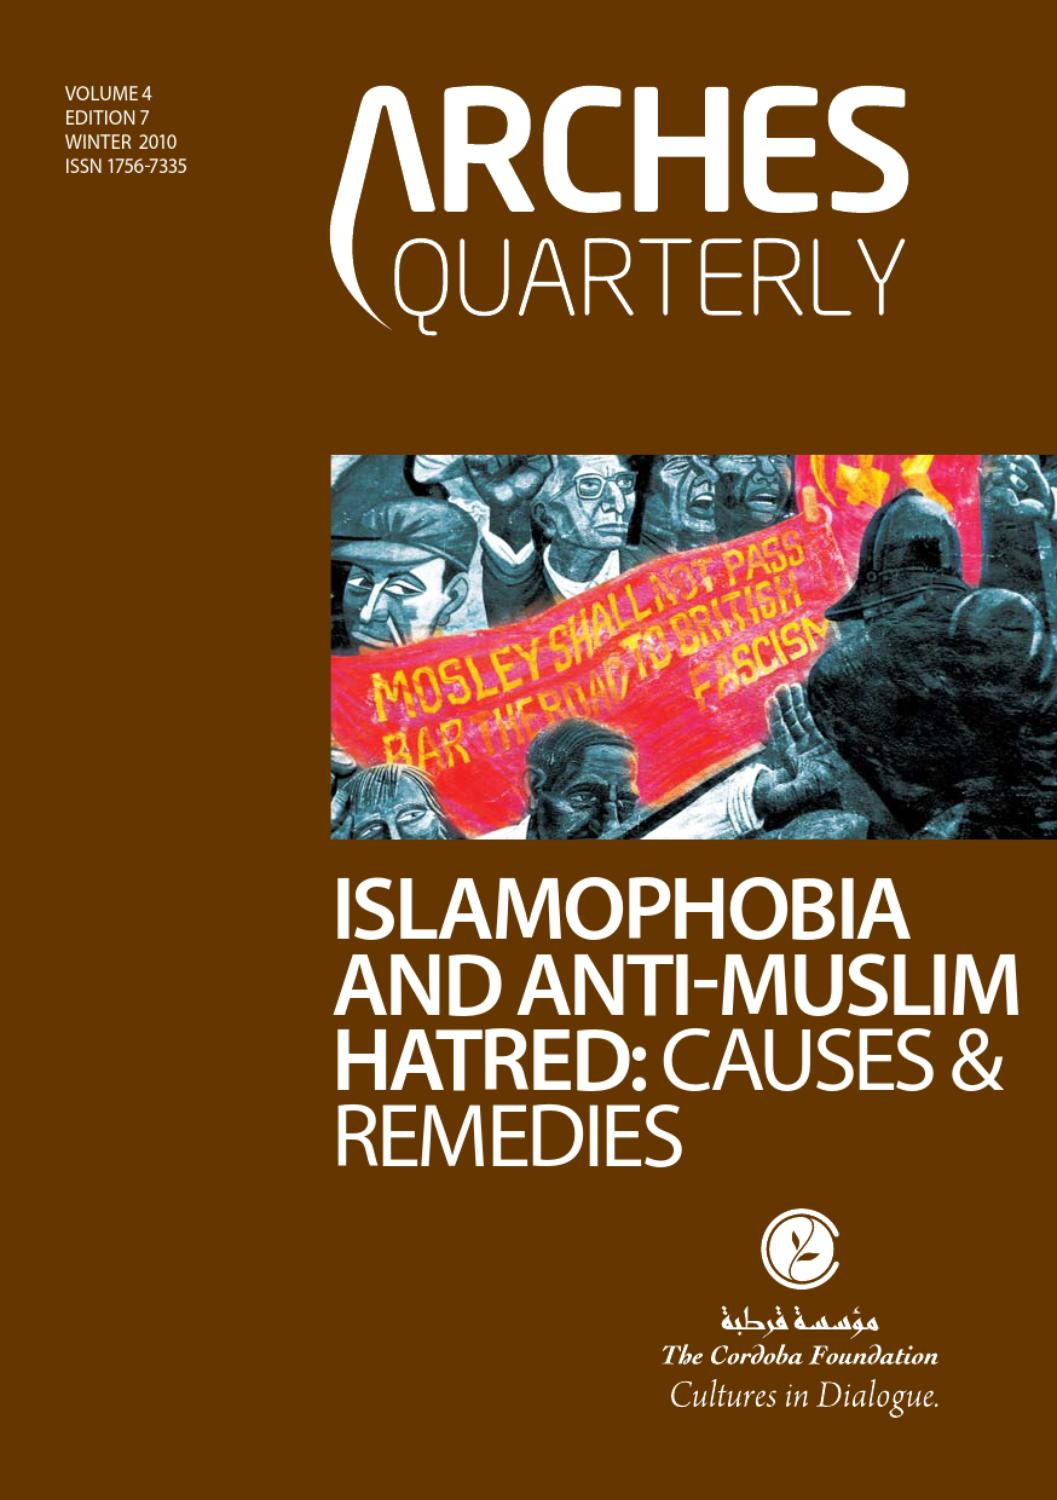 Contemporary Islamophobia Before 9/11: A Brief History by Chris